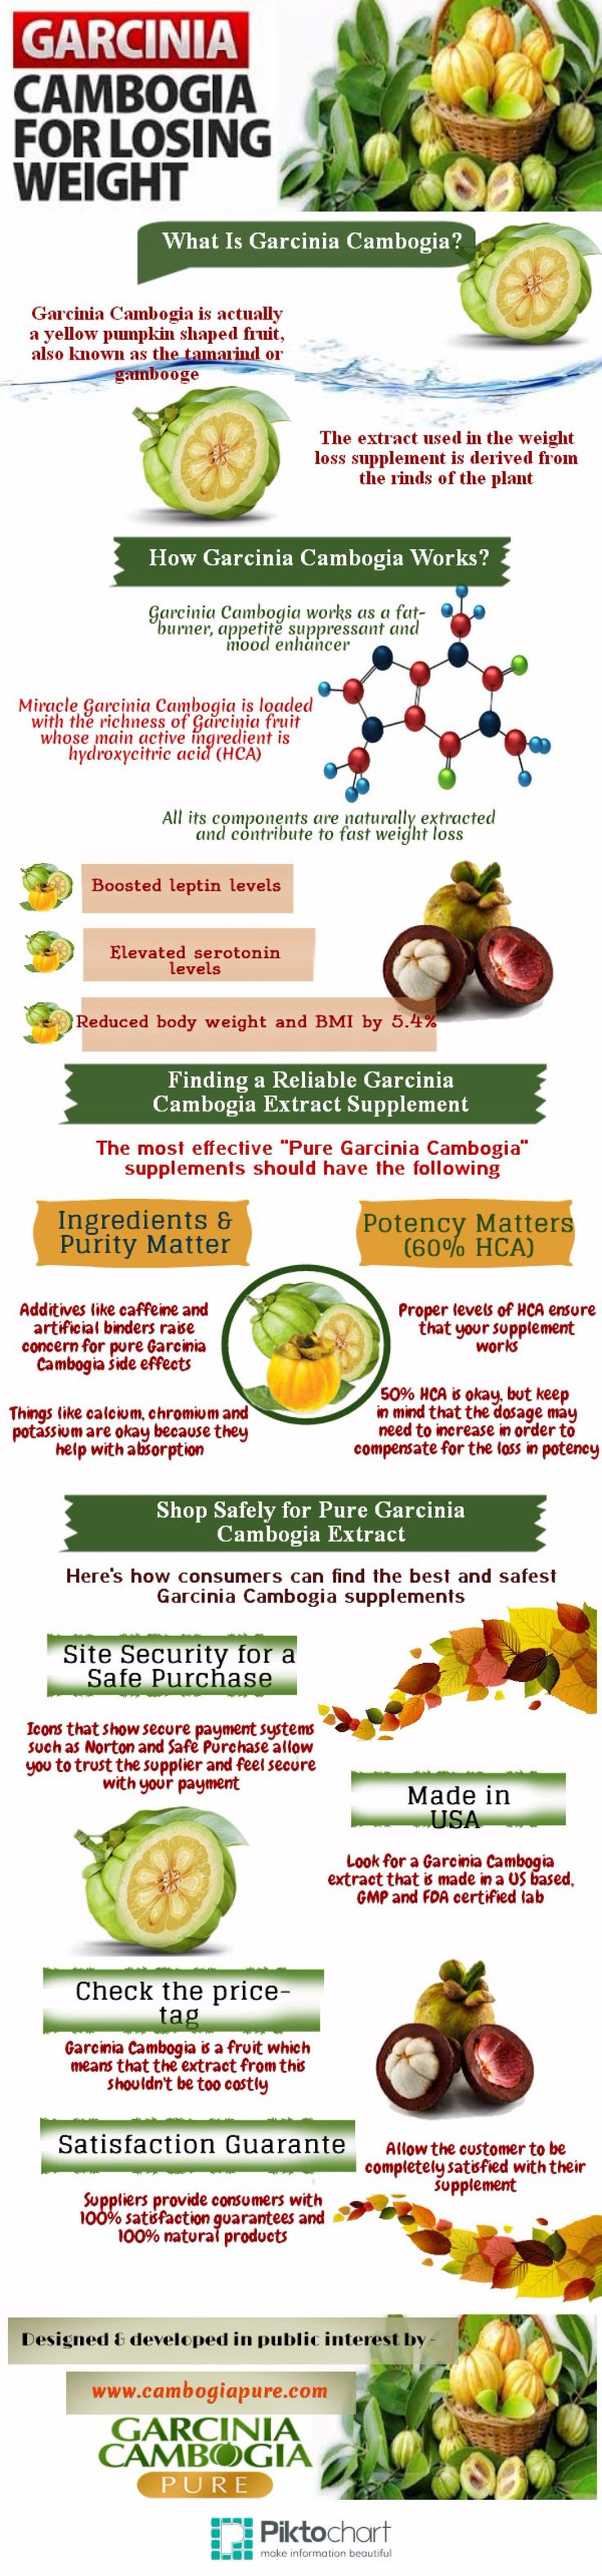 Garcinia Cambogia Pure  If you're looking to fight the fat, Garcinia Cambogia Pure could help. Garcinia Cambogia Pure is a dual action supplement with fat burning properties that can help to suppress your appetite so you can say 'no' to calorific gorges between meals.  #garciniacambogia #weightloss